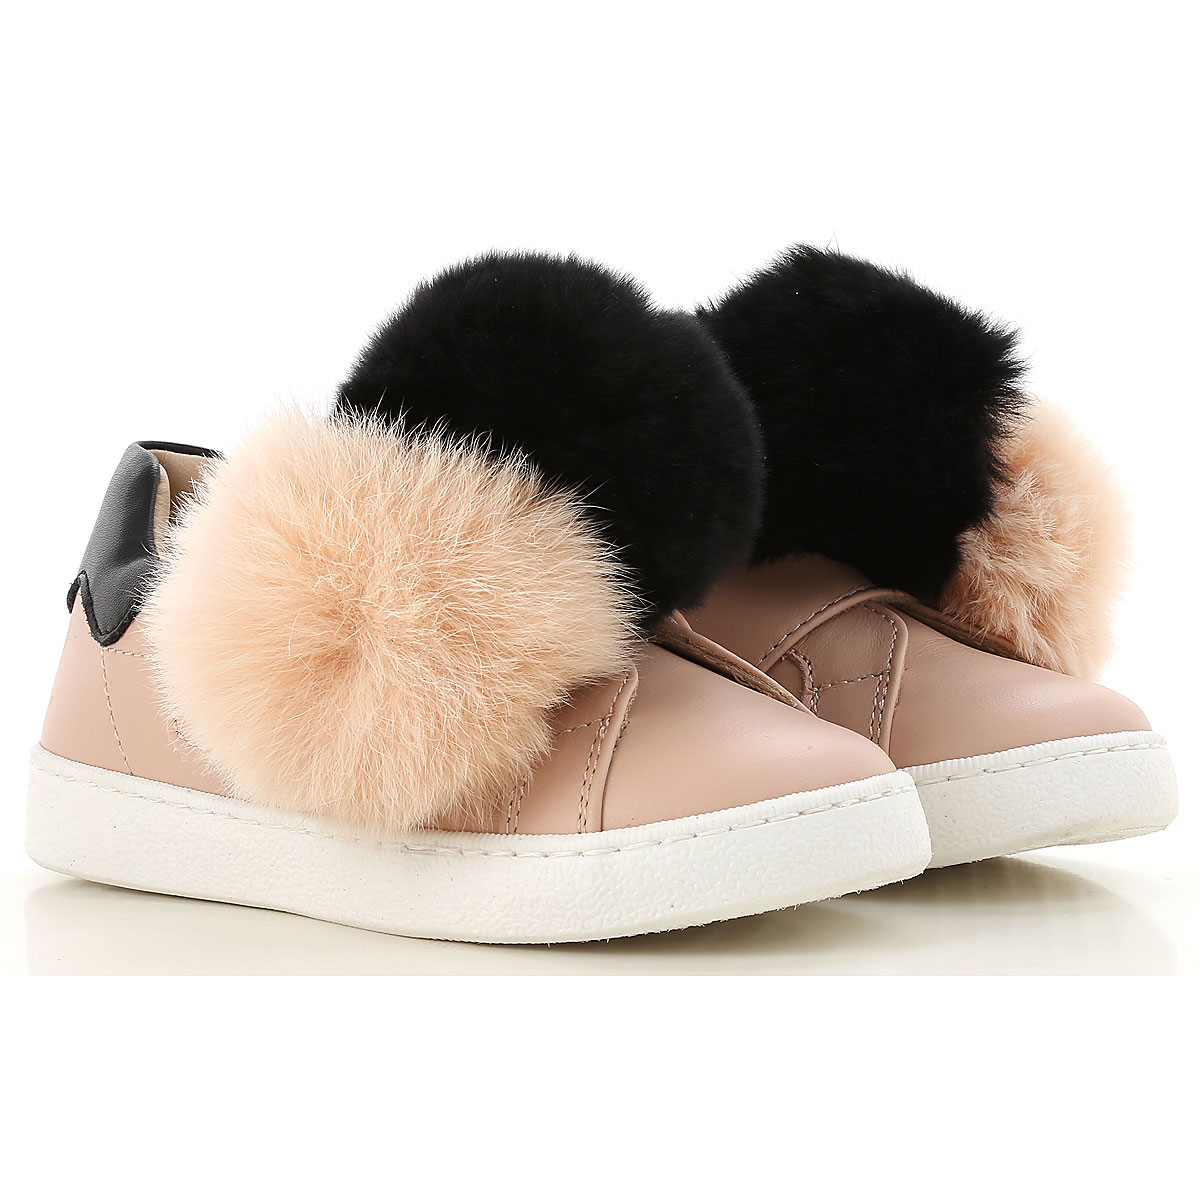 Image of Florens Kids Shoes for Girls, Pink, Leather, 2017, 20 21 22 23 24 25 26 27 28 29